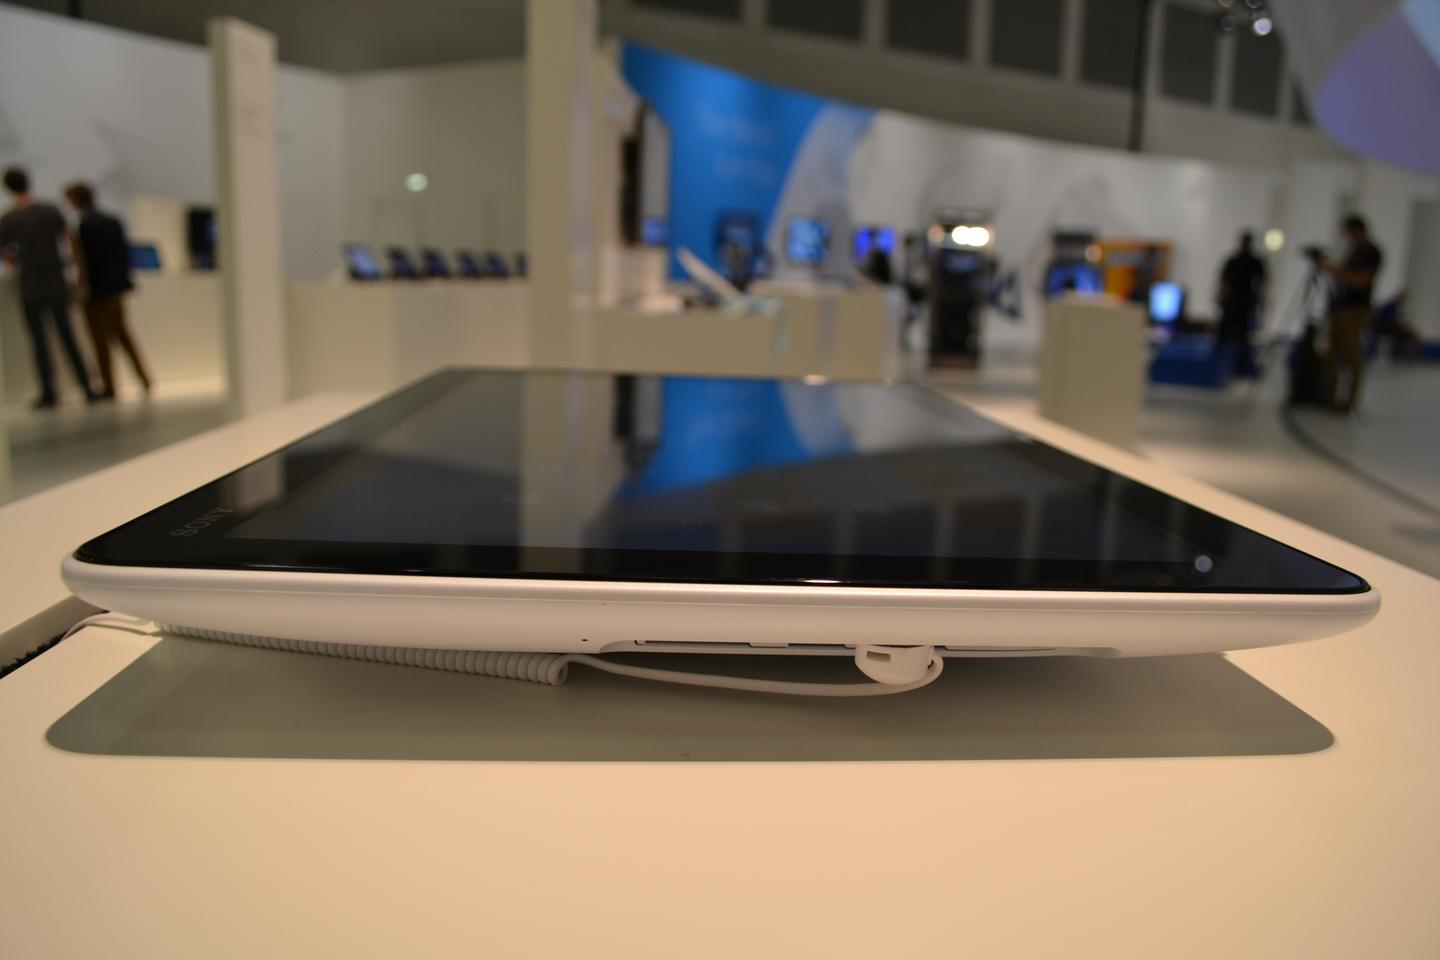 From the side, the Tap 20 on display at IFA 2012 in Berlin